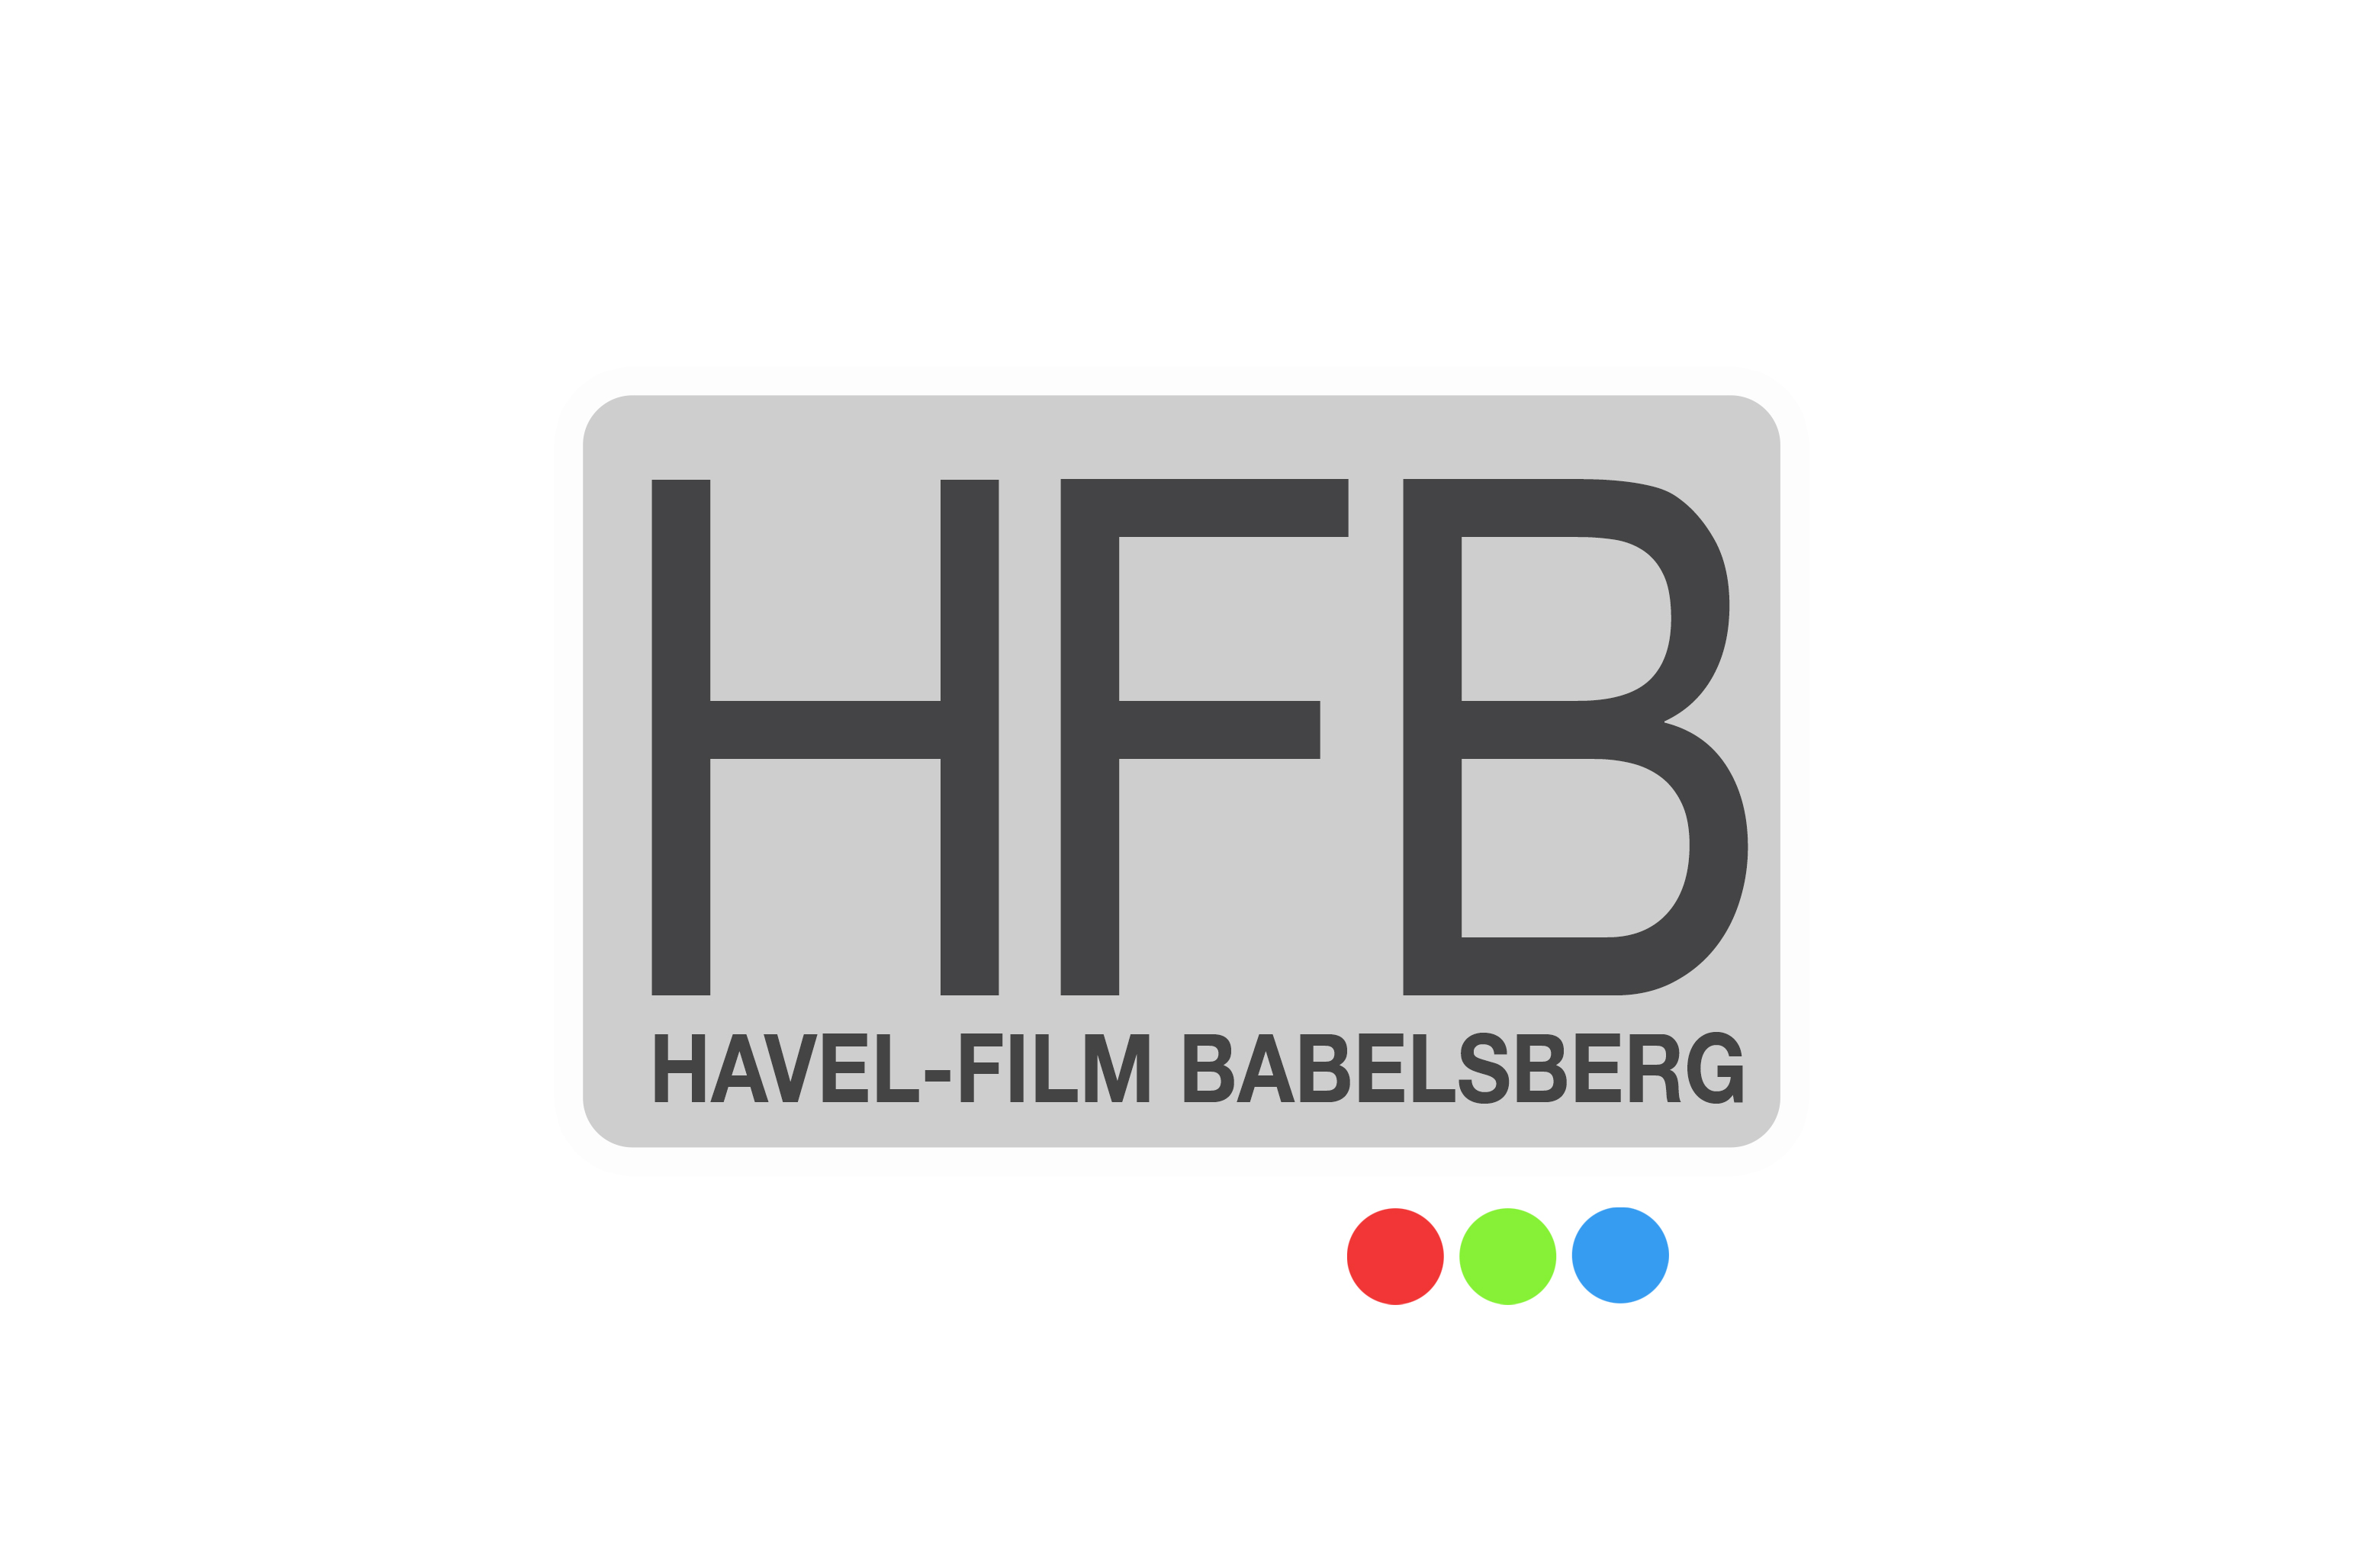 Havel-Film Babelsberg Hans-Dieter Rutsch